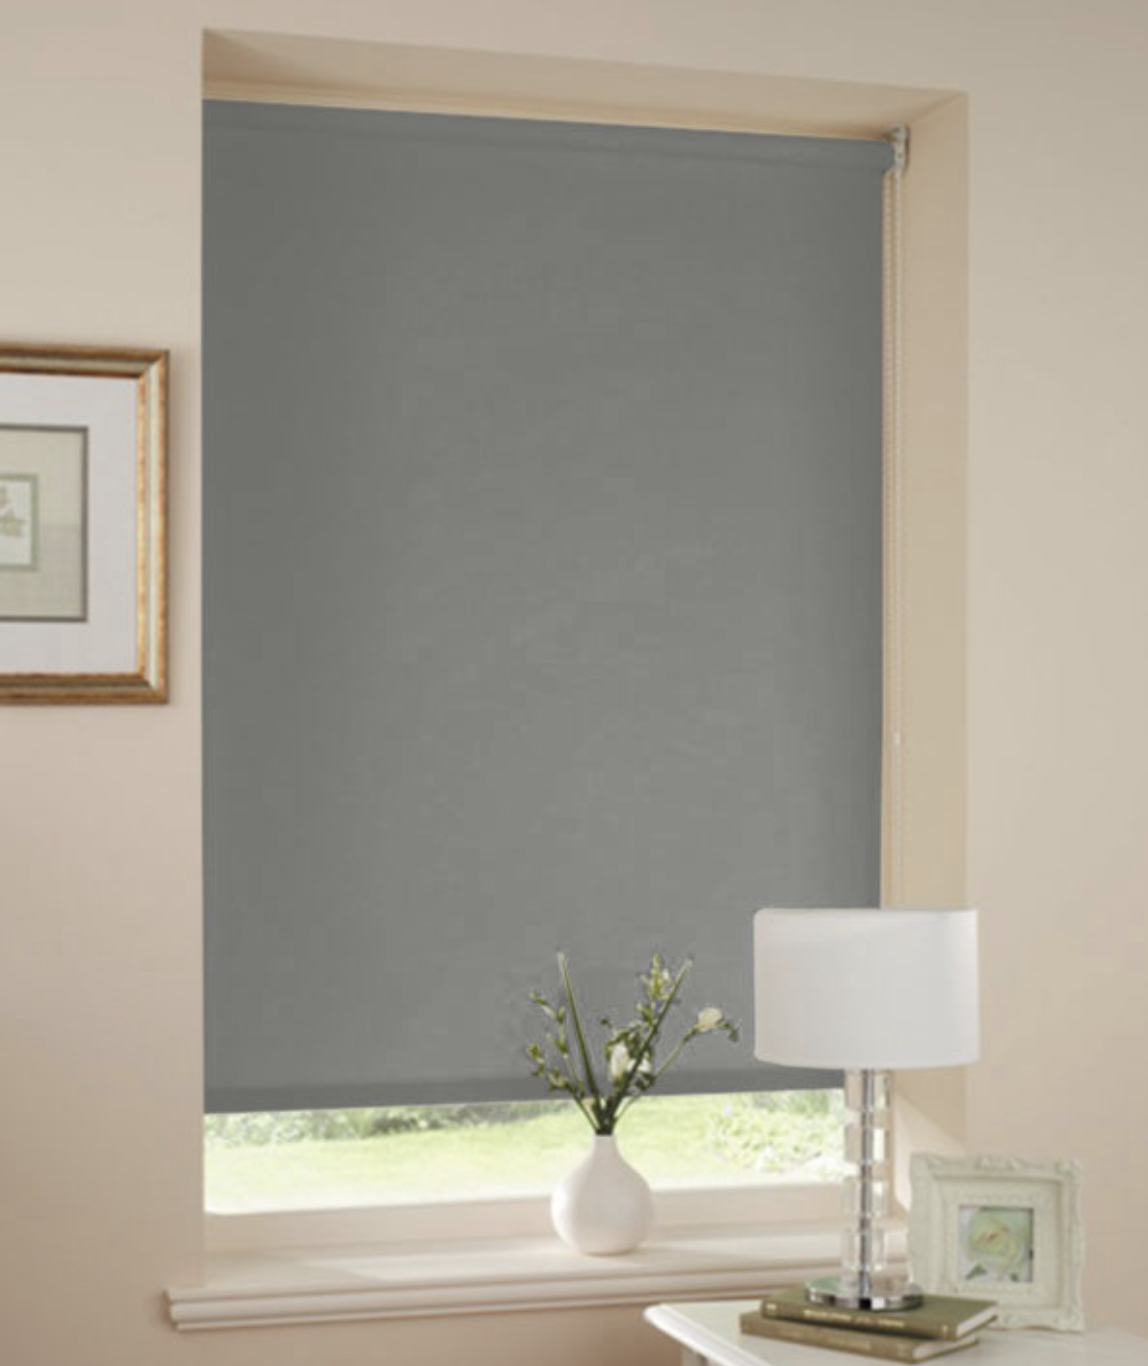 For bedrooms, blackout roller blinds are ideal